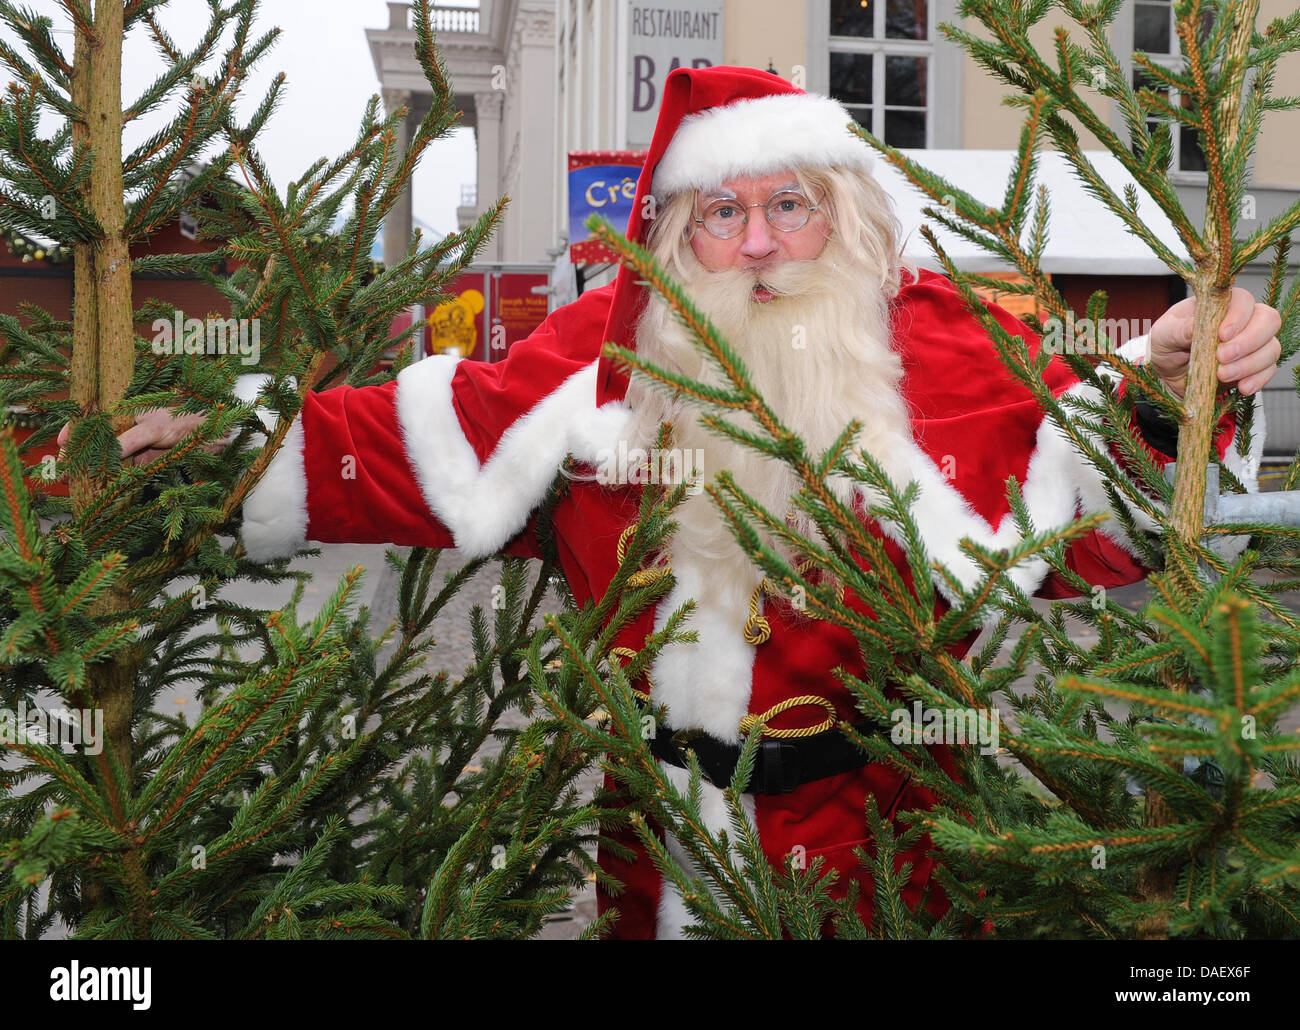 The Christmas Clause.A Man Dressed Up As Santa Clause Looks Through A Christmas